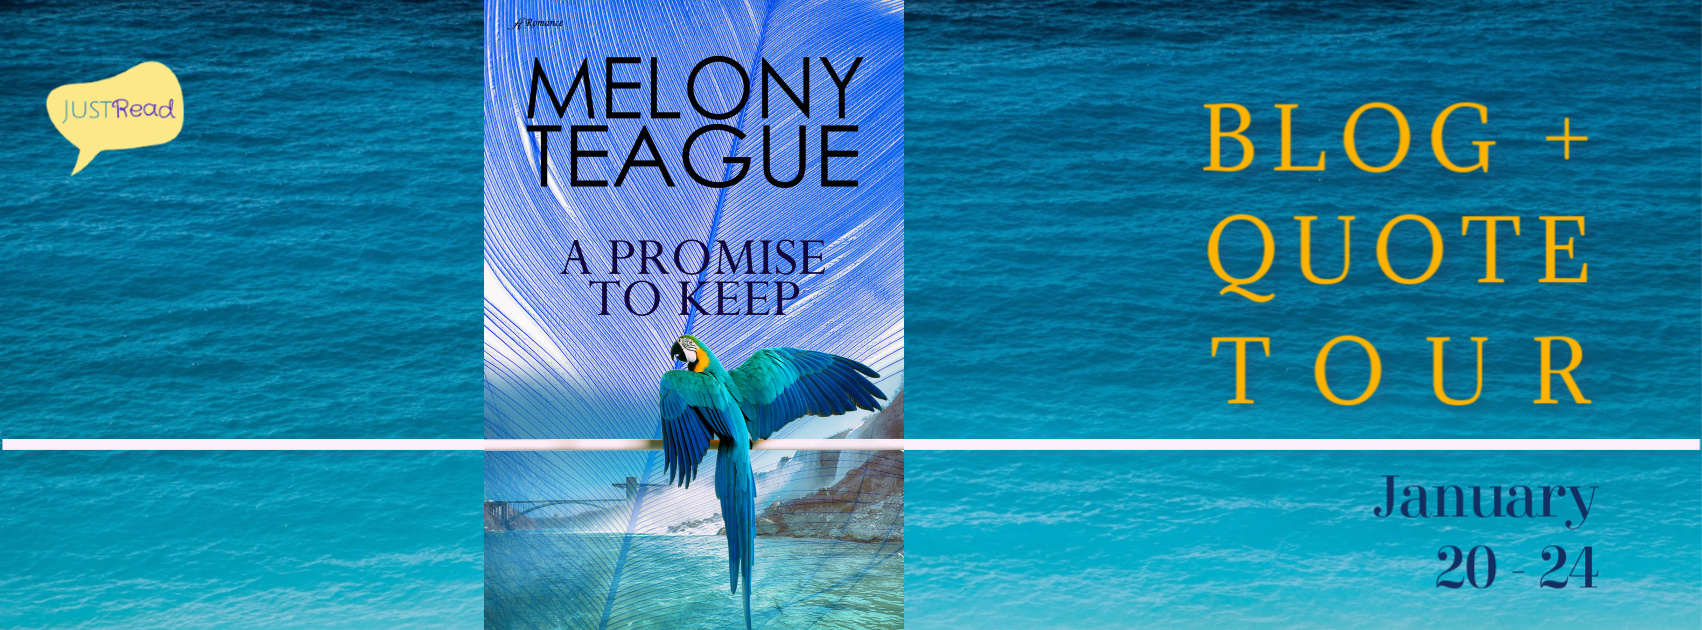 Welcome to A Promise to Keep Blog + Quote Tour & Giveaway!